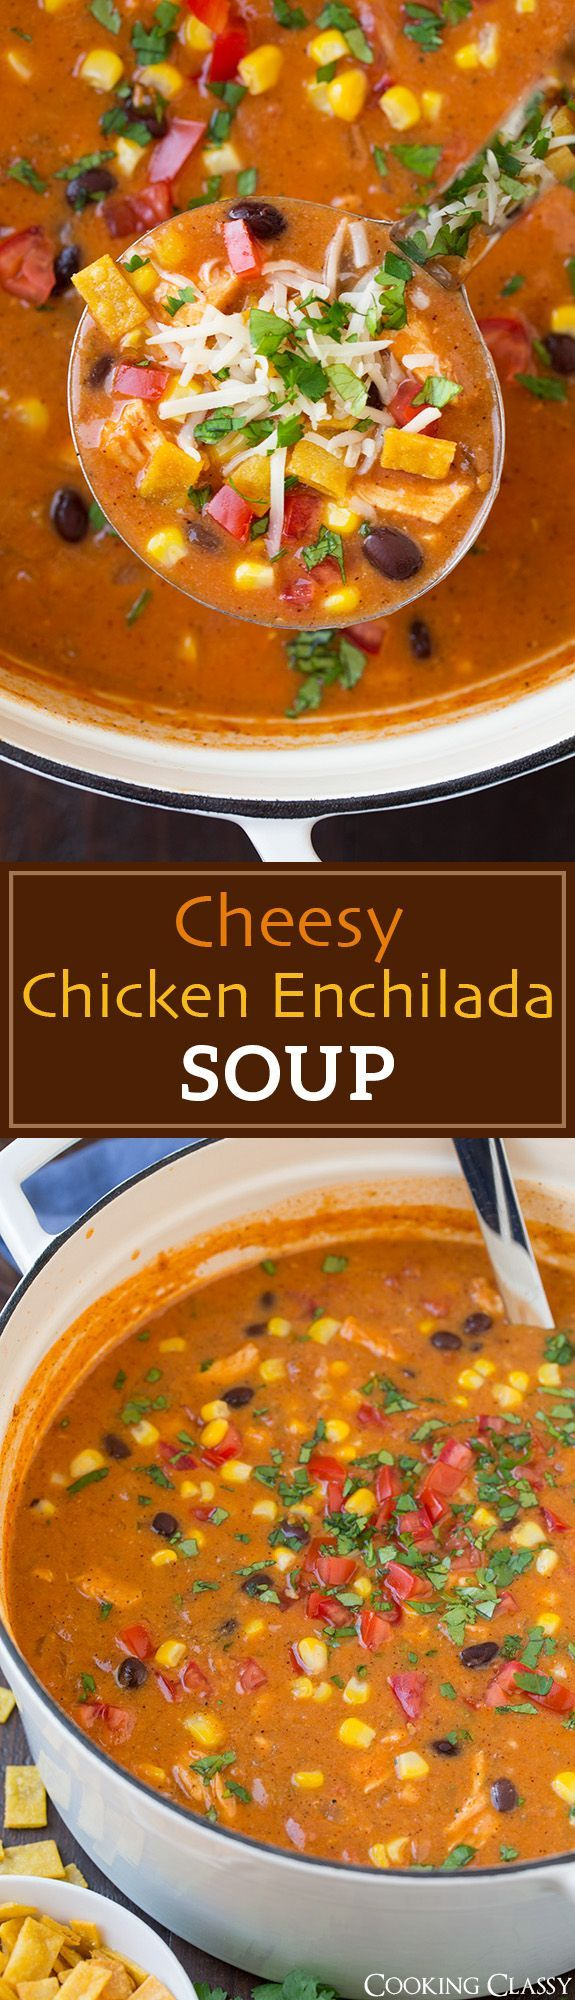 Cheesy Chicken Enchilada Soup - so good you'll want to make it on a regular basis! Chicke cooked right in the soup so it's an easy one pot dinner!